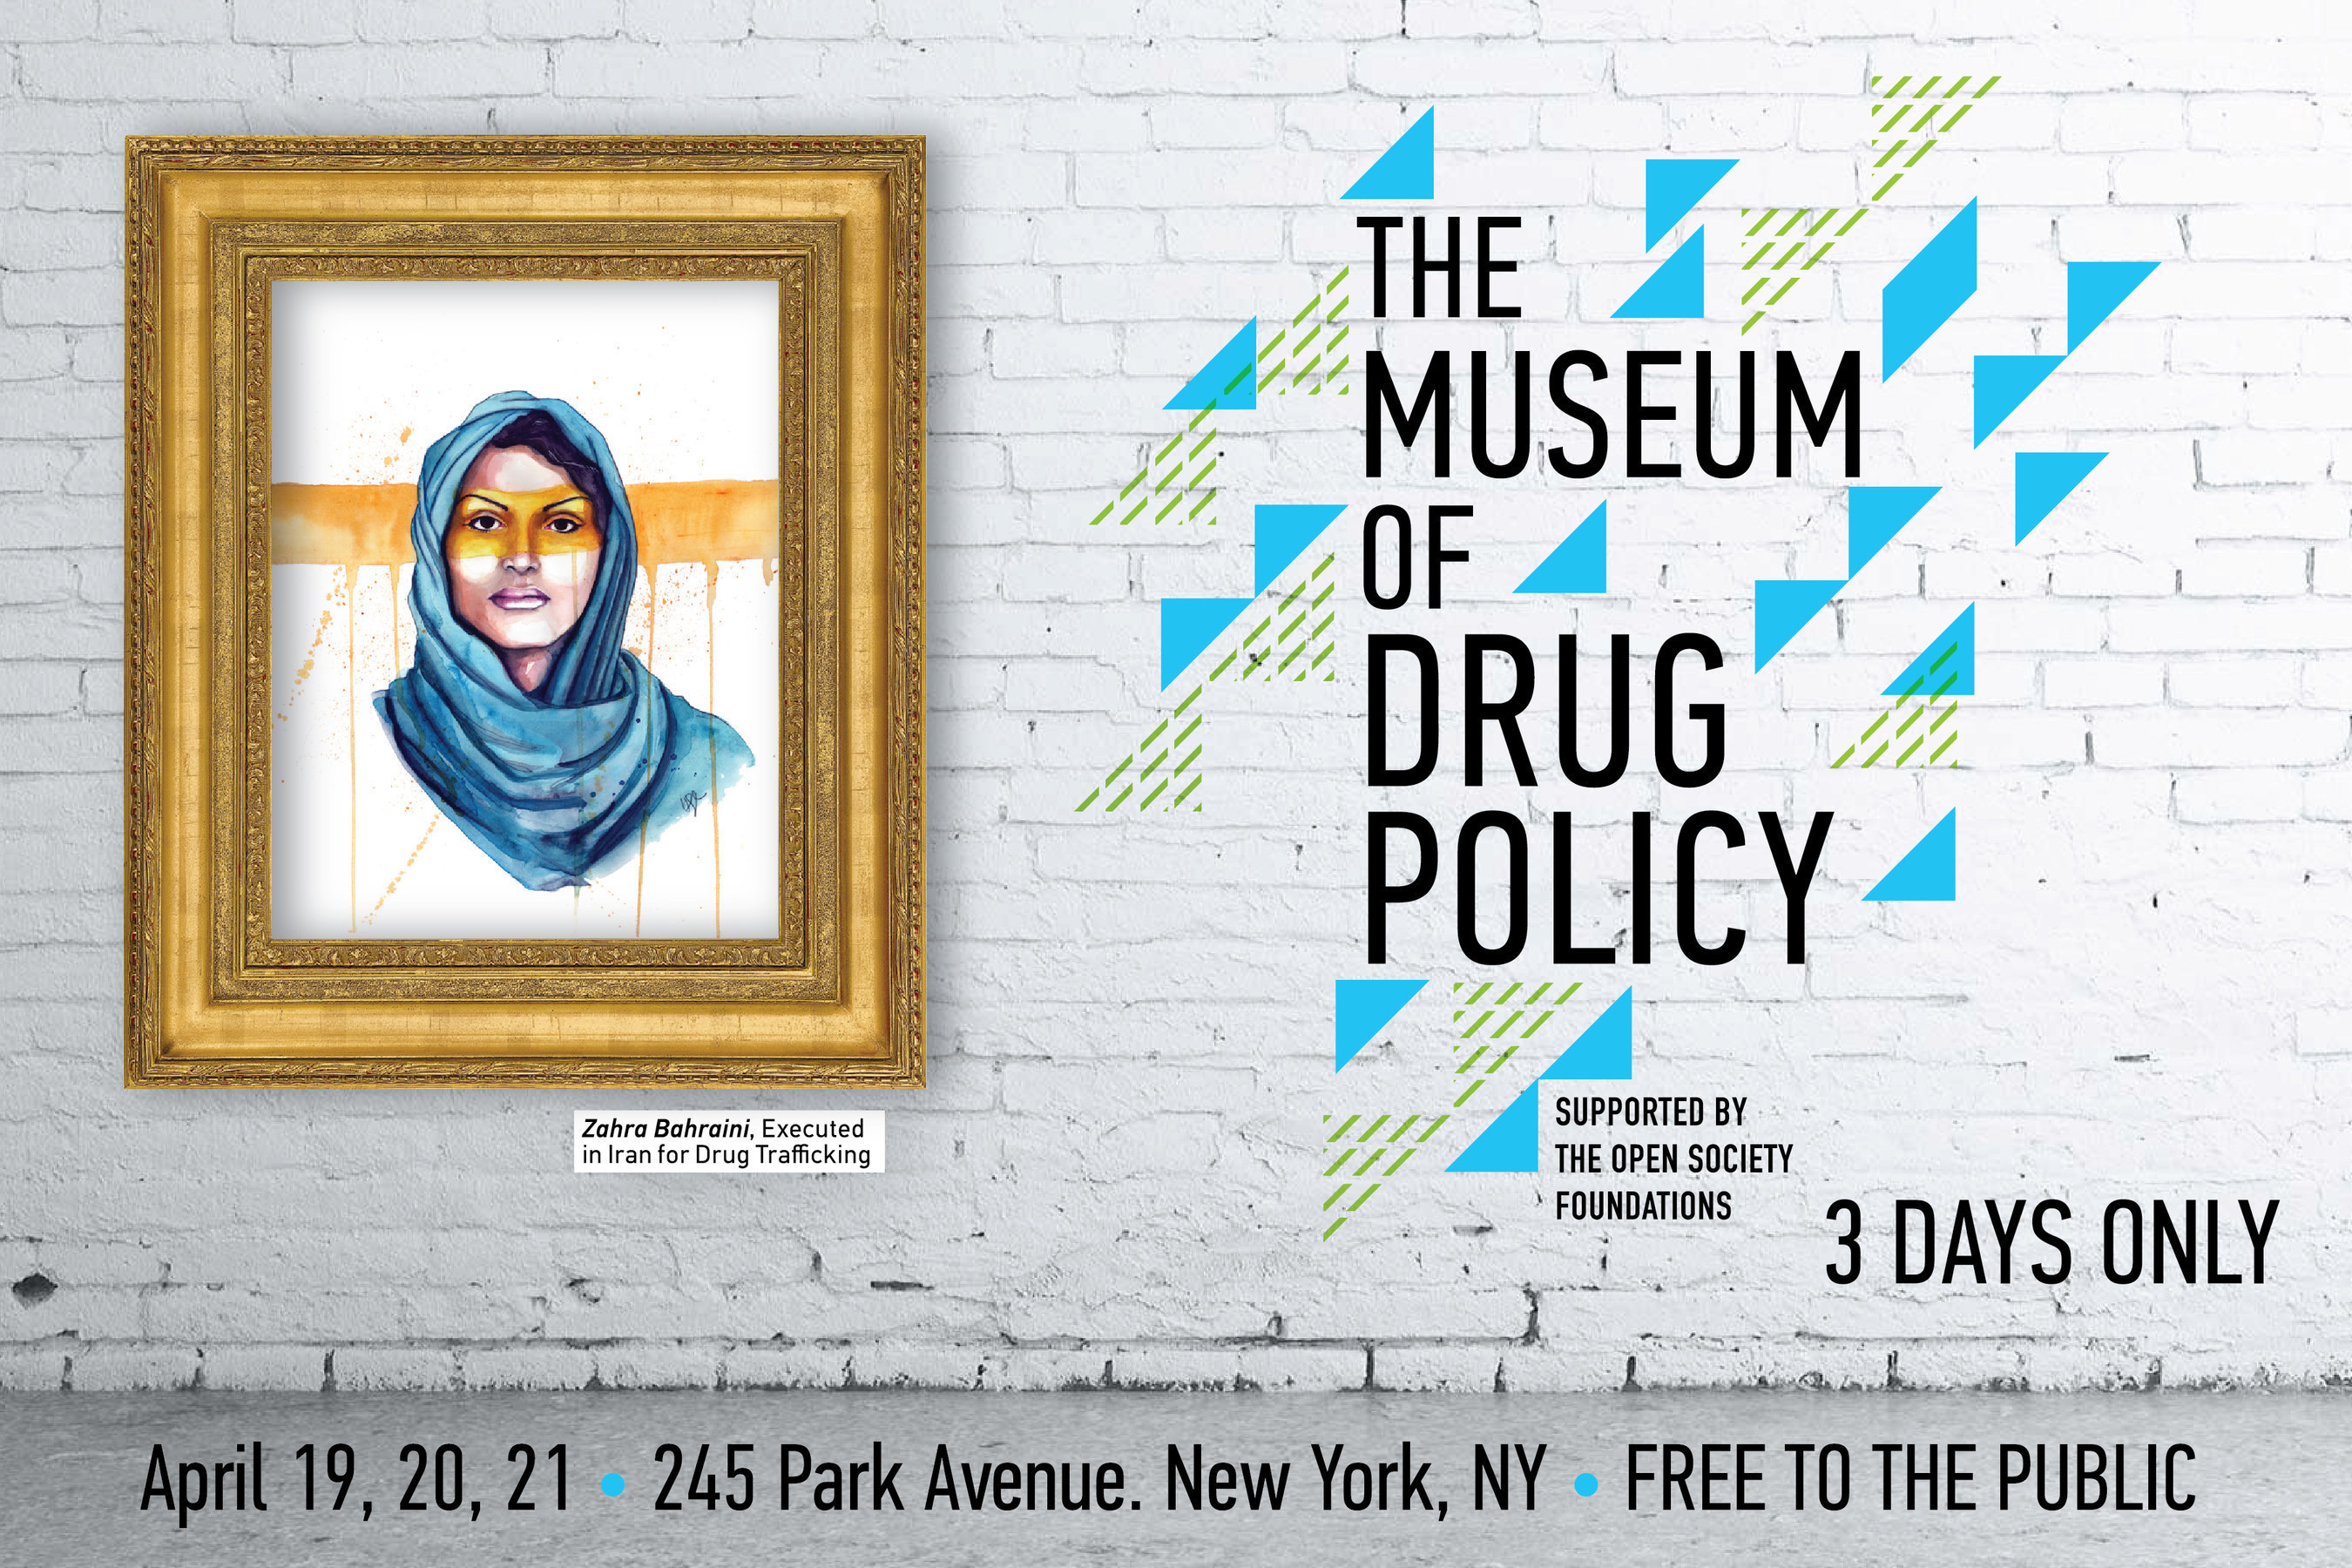 Russell Simmons, Melissa Harris-Perry, John Forte, Dr. Carl Hart, Matthew Heineman and Angie Martinez to Join 40 Artists at 'The Museum of Drug Policy'